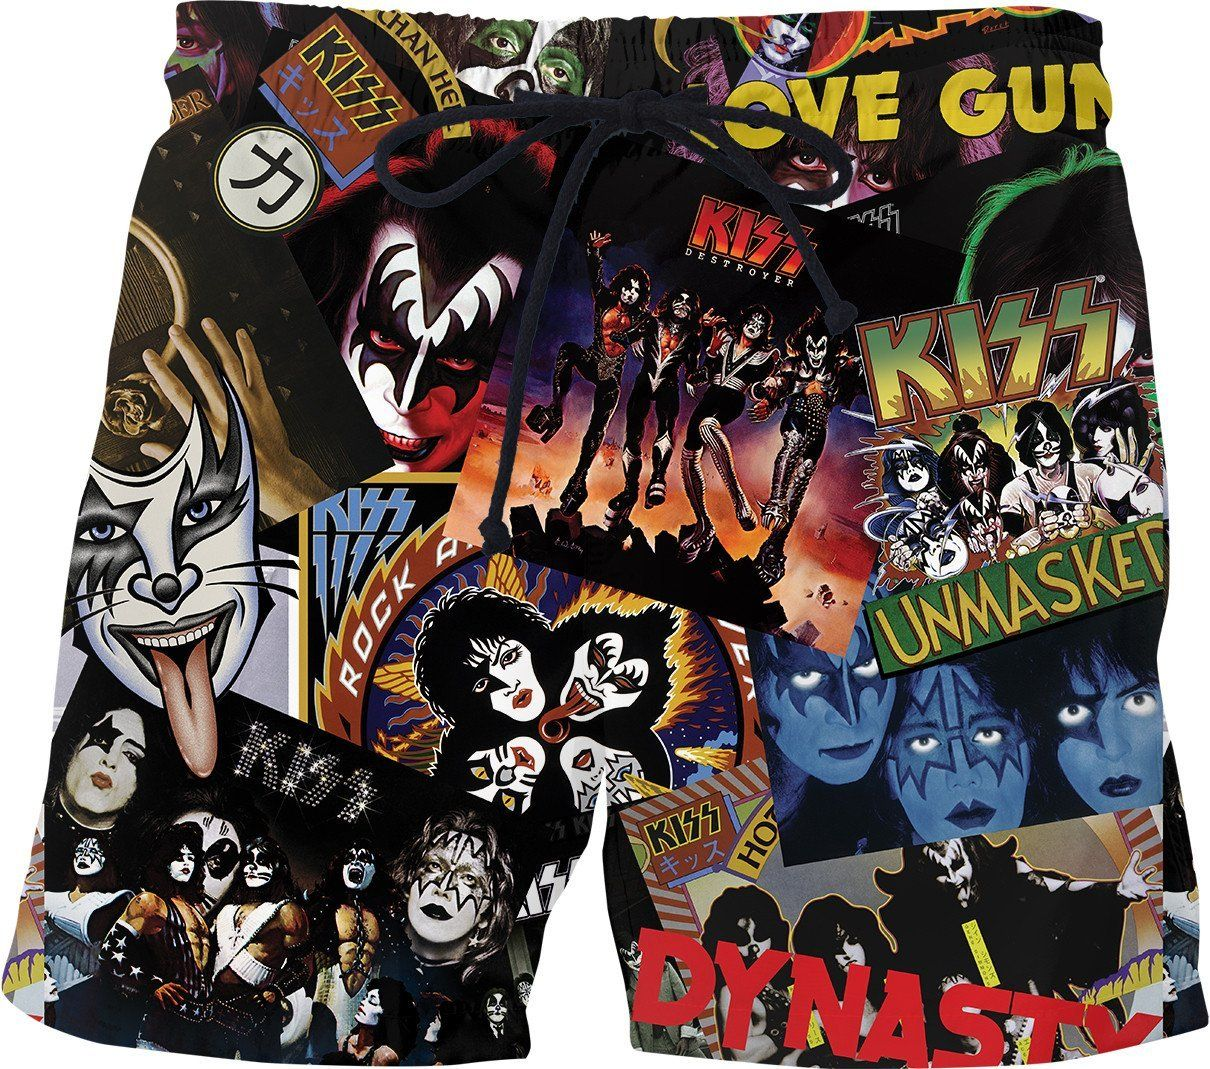 Kiss Rock Band THROUGH THE FIRE 2-Sided All Over Print Long Sleeve Poly T-Shirt